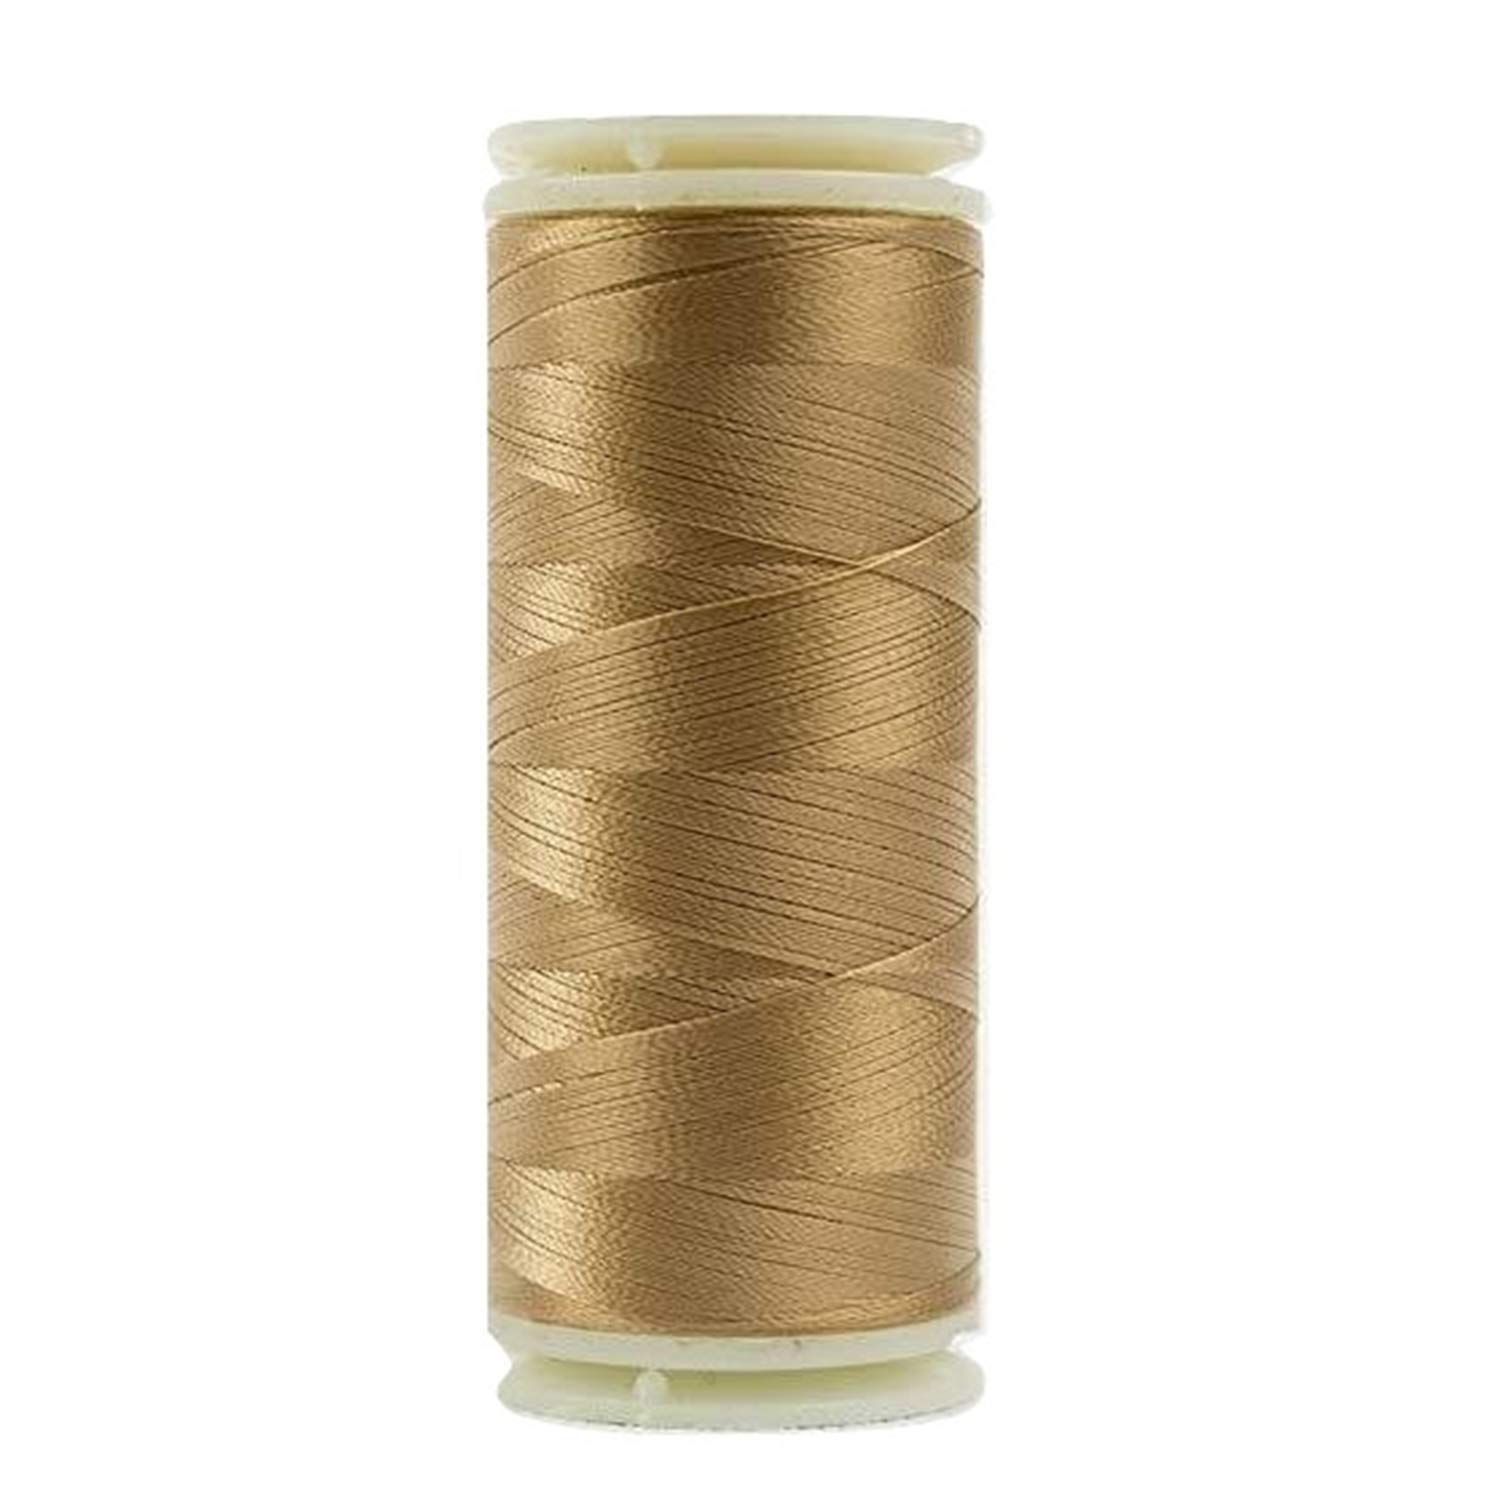 Silk-Like Thread for Fine Sewing WonderFil 100wt InvisaFil Pink Specialty Threads 2-Ply Cottonized Soft Polyester 400m